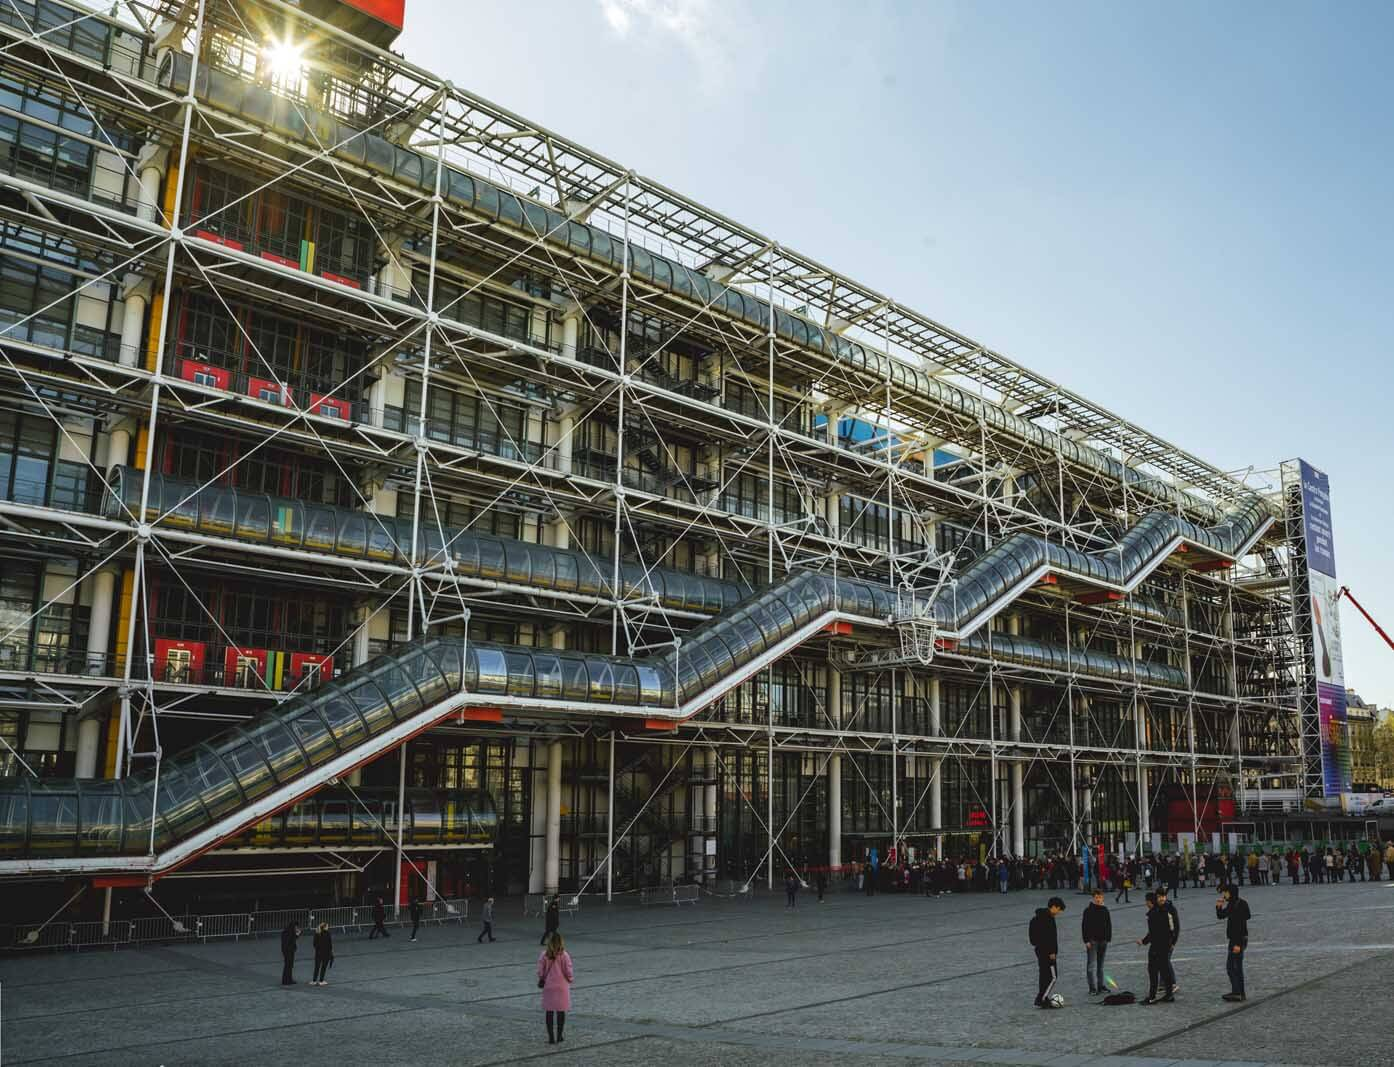 The outside of the Pompidou Center in Paris